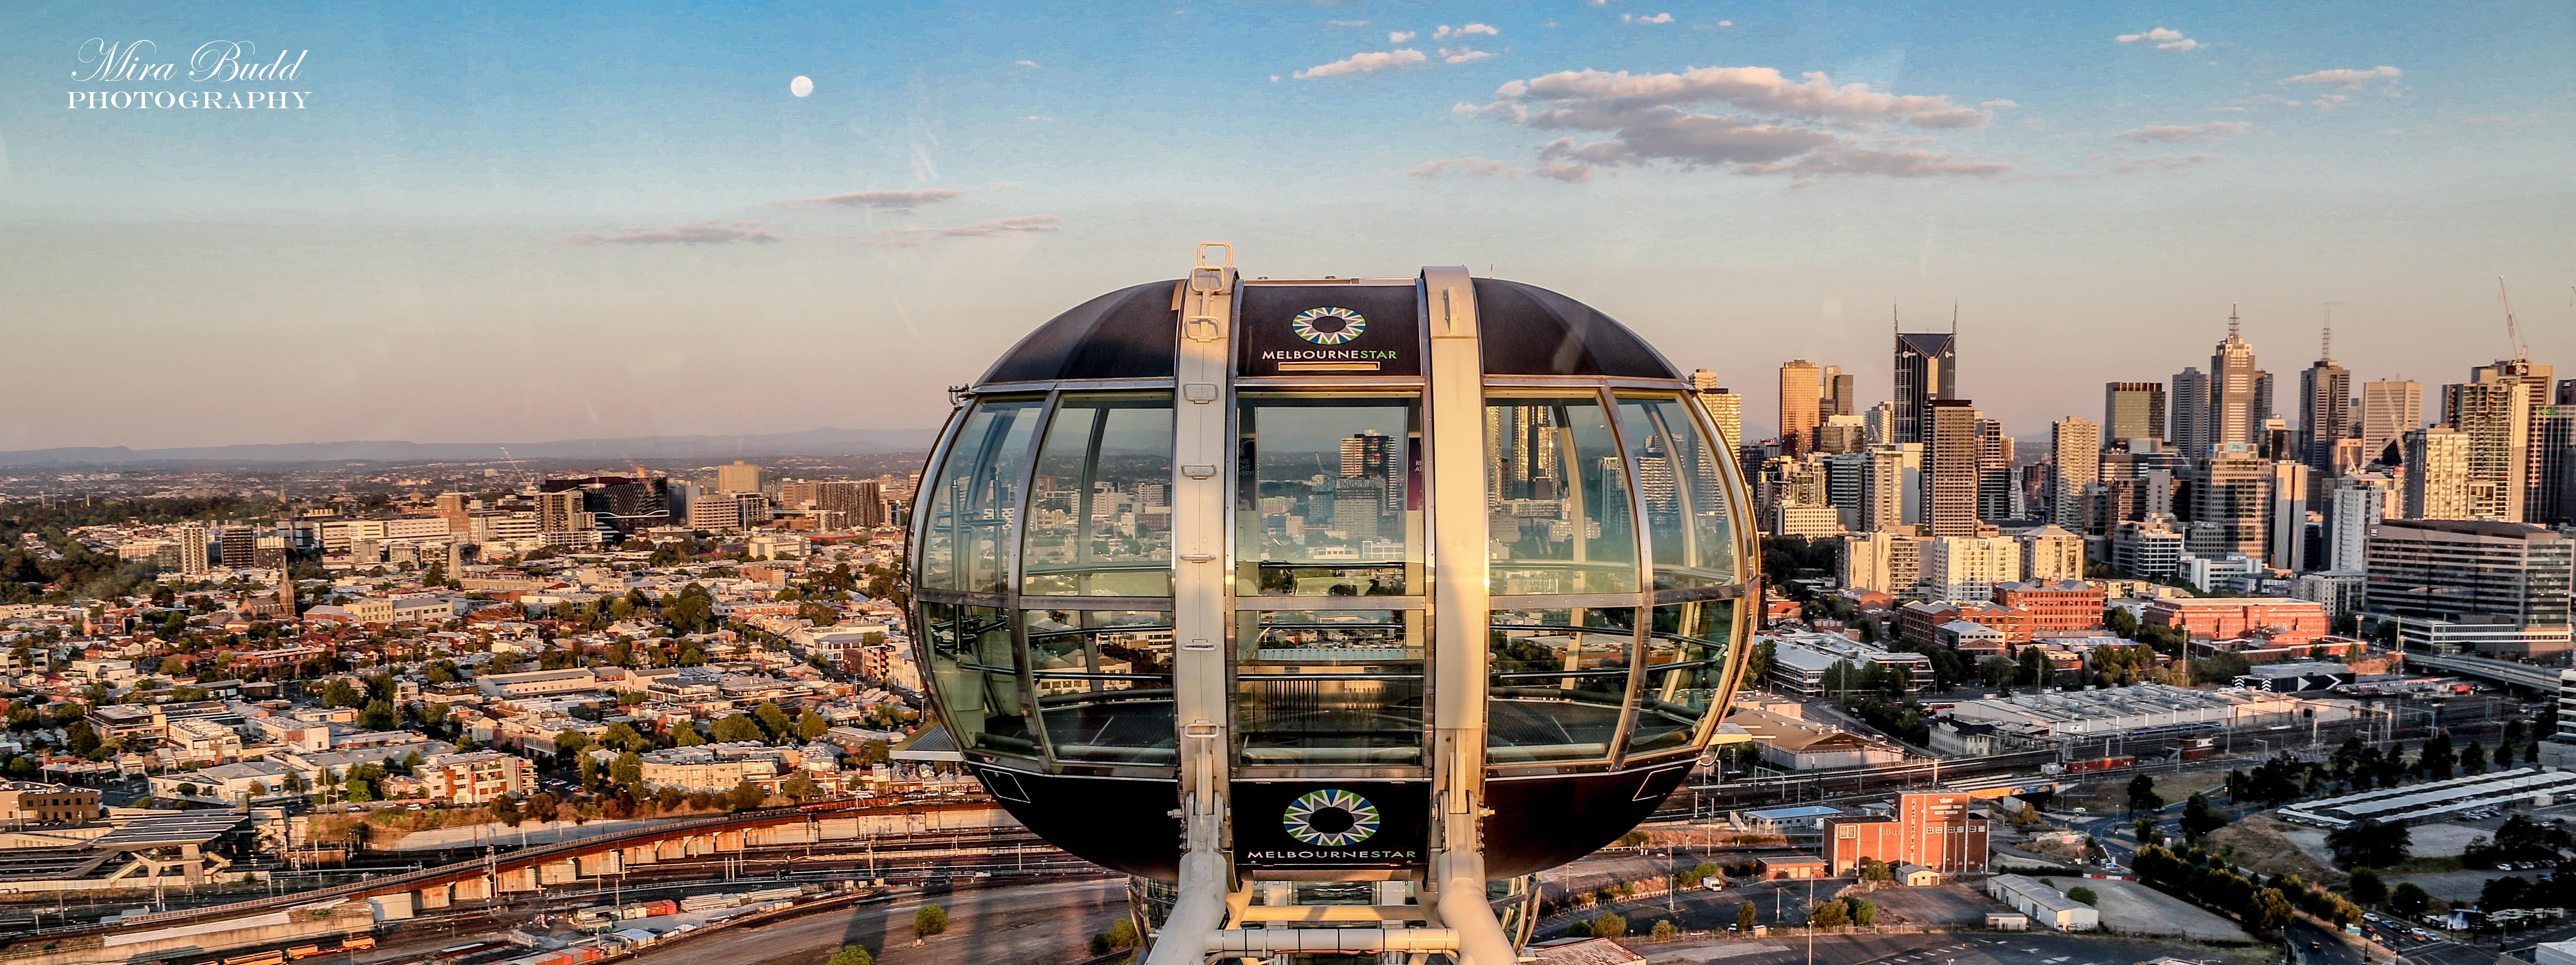 Melbourne Star Observation Wheel Things To See In Melbourne Beautiful Places In Australia